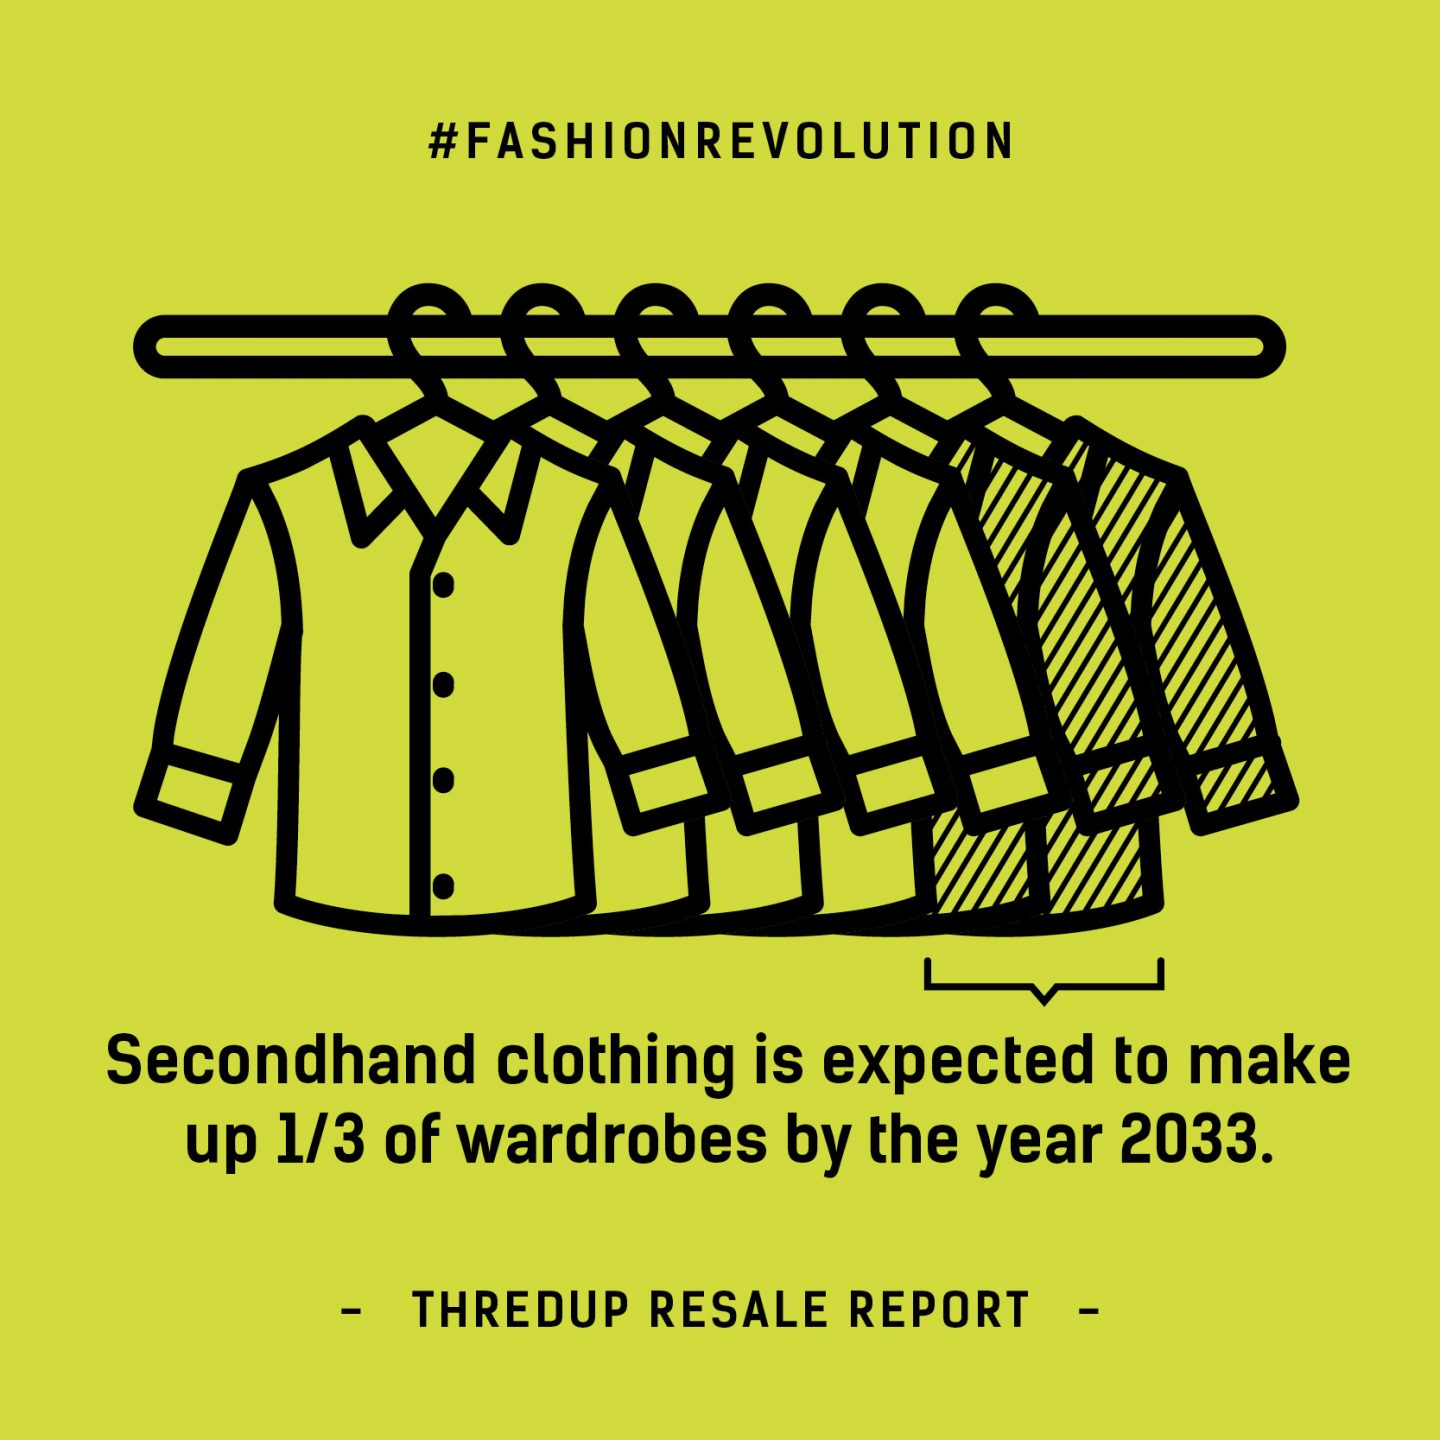 Sustainable fashion infographic from Fashion Revolution and Thredup about secondhand clothing